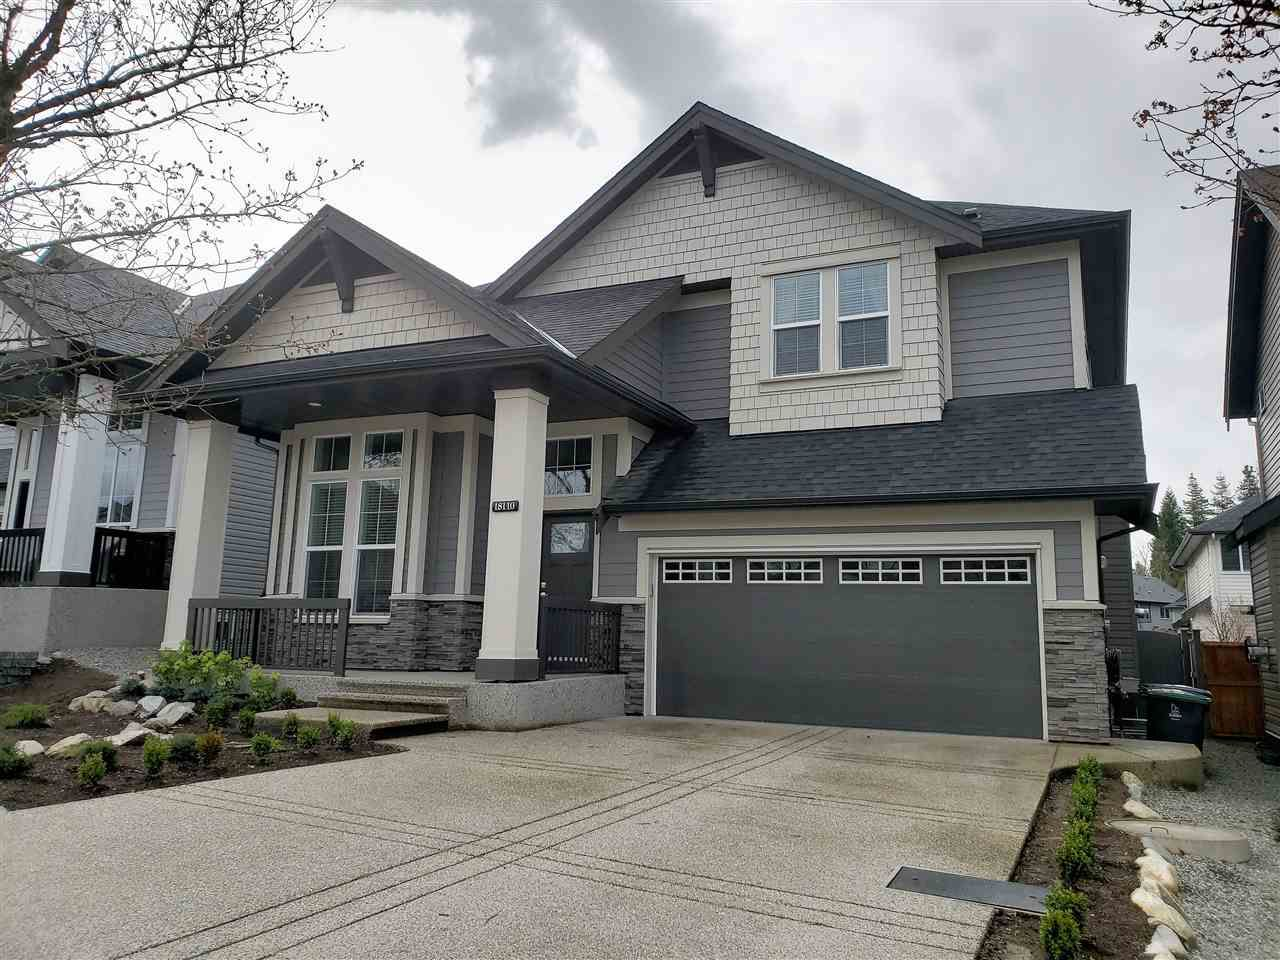 "Main Photo: 18110 68 Avenue in Surrey: Cloverdale BC House for sale in ""SOUTH CREEK"" (Cloverdale)  : MLS®# R2252792"